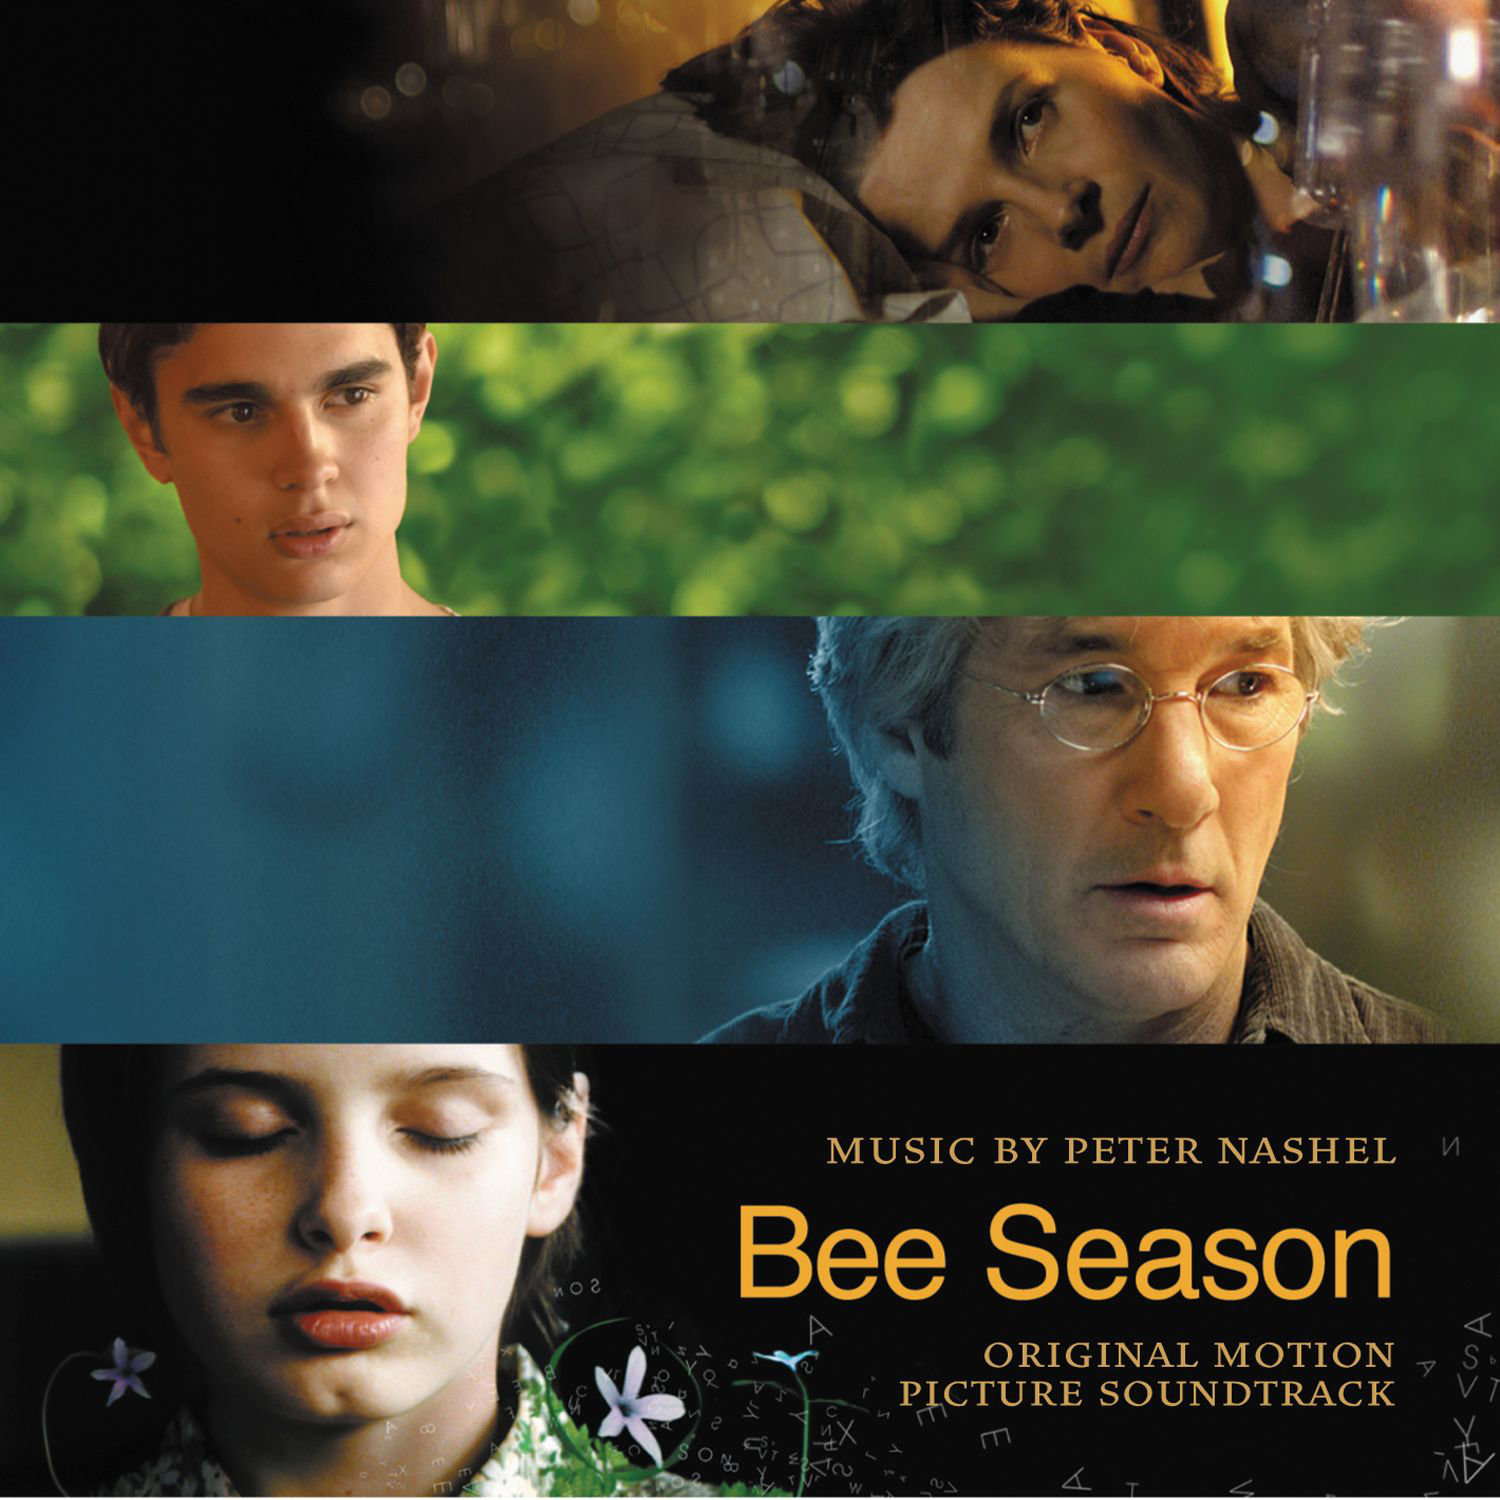 bee season by myla goldberg Hile it may be true, as tolstoy famously wrote, that every unhappy family is unhappy in its own way, the unhappiness of the naumanns in myla goldberg's unusual first novel, bee season, seems so particularly original and intriguing that you almost want the author to go on denying the family members the fulfillment they so ardently seek.